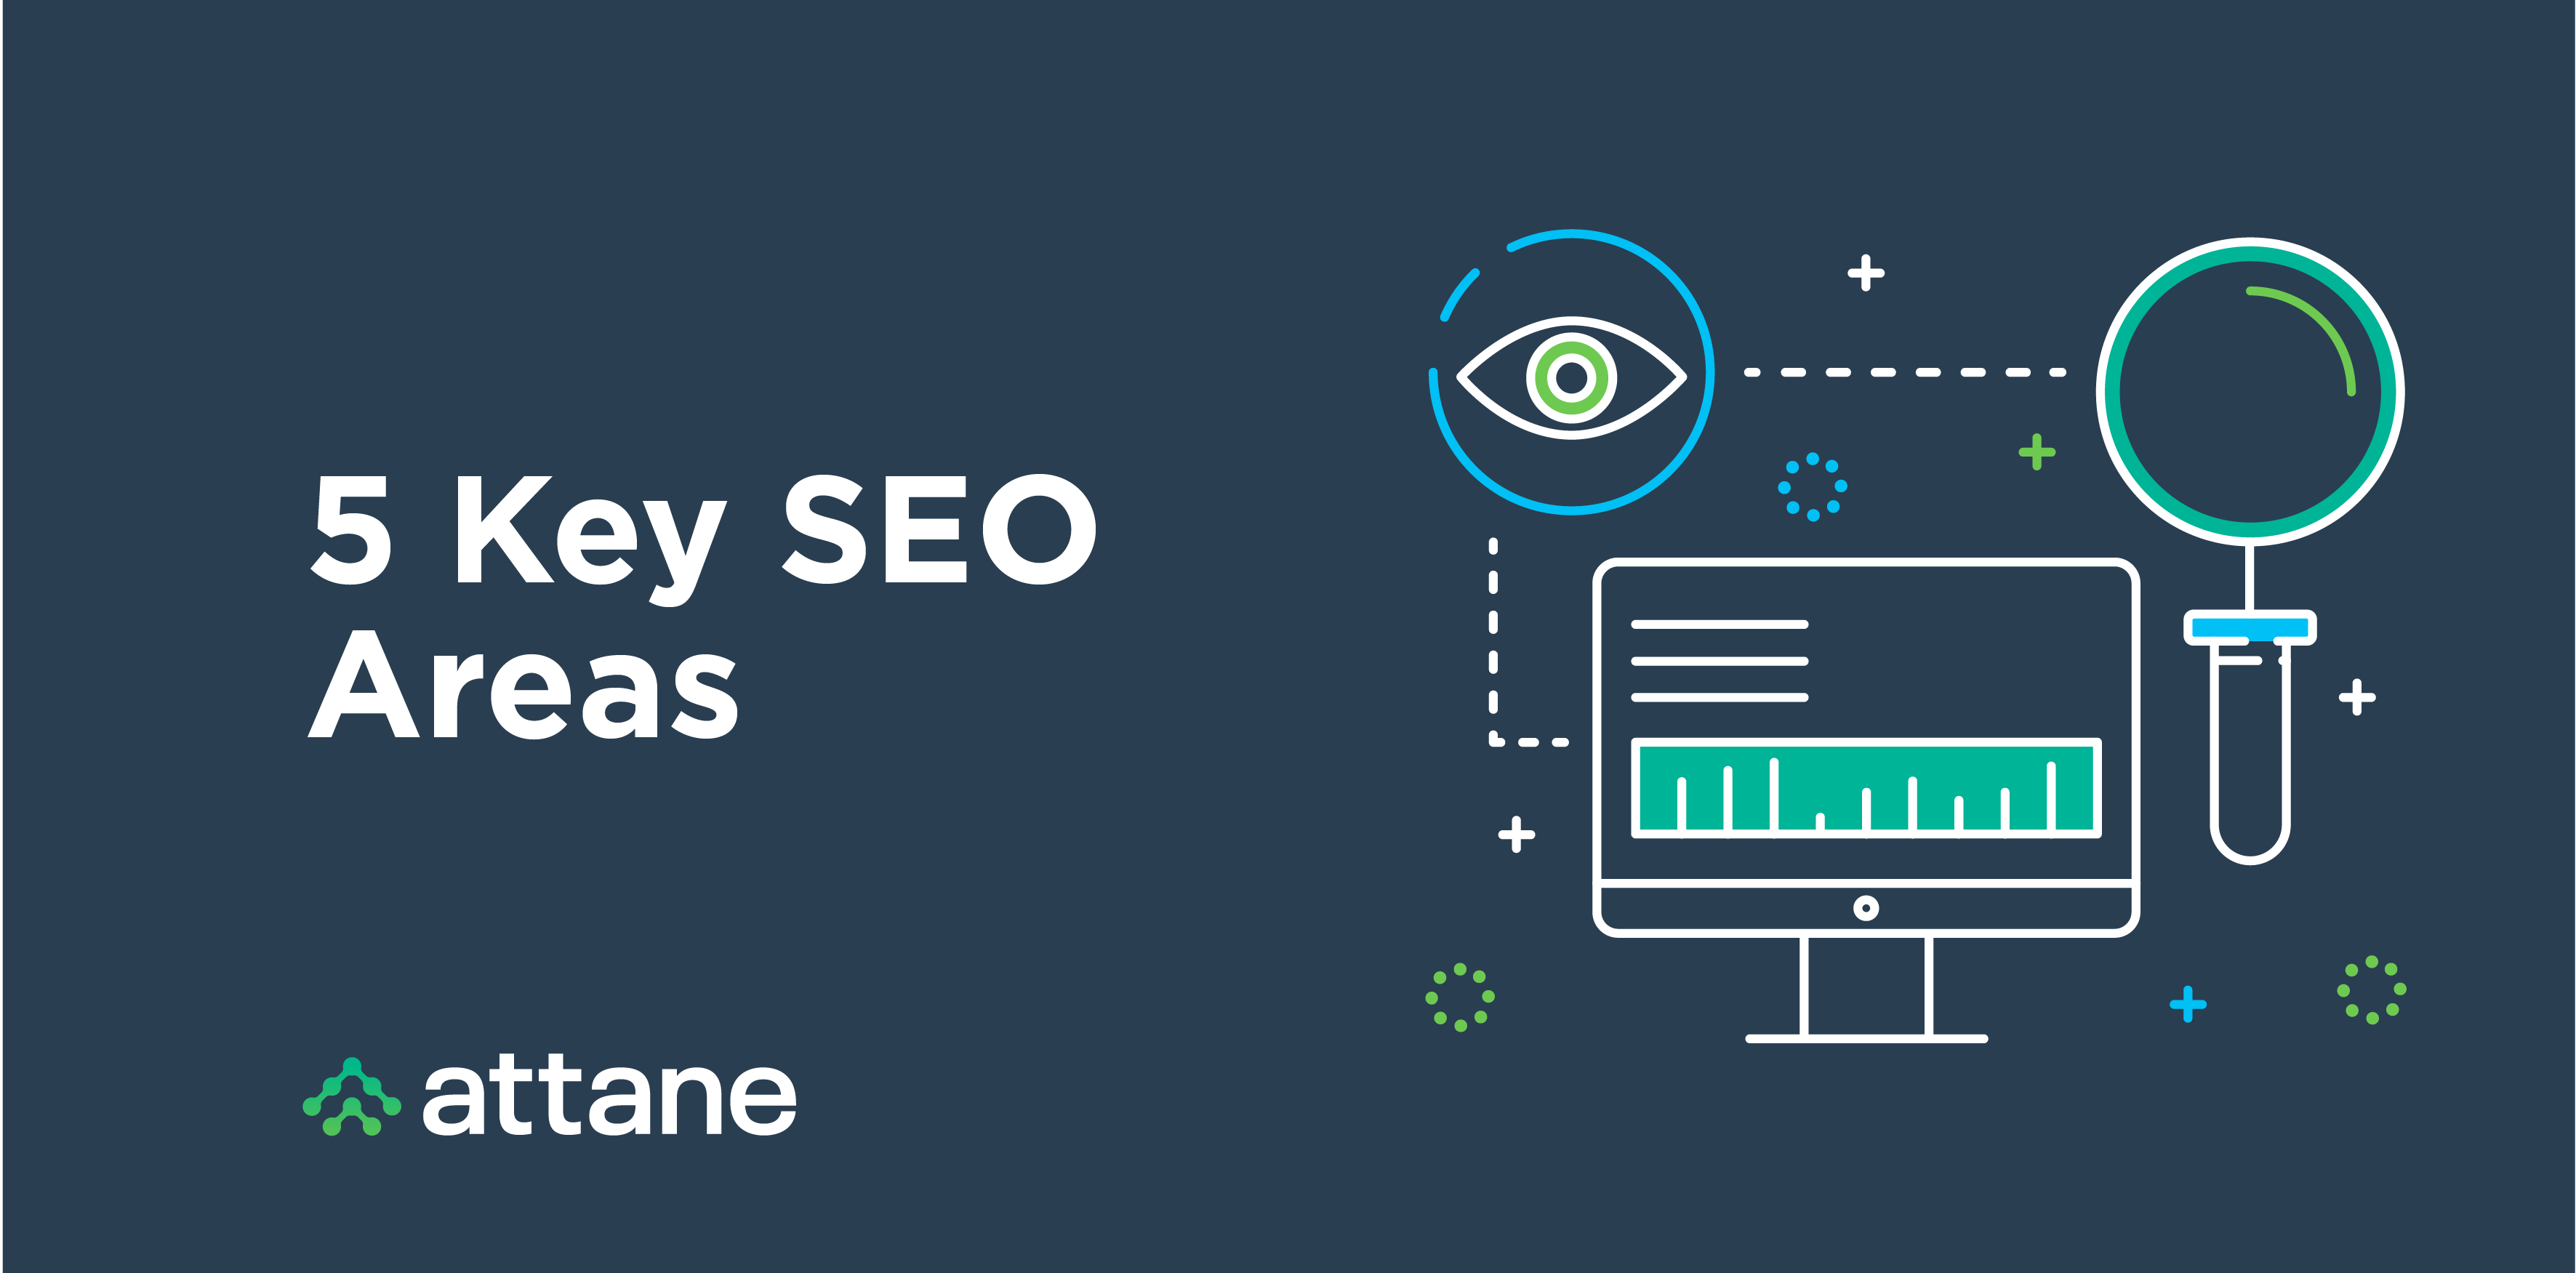 How to Build a Strong SEO Strategy: 5 Key Areas